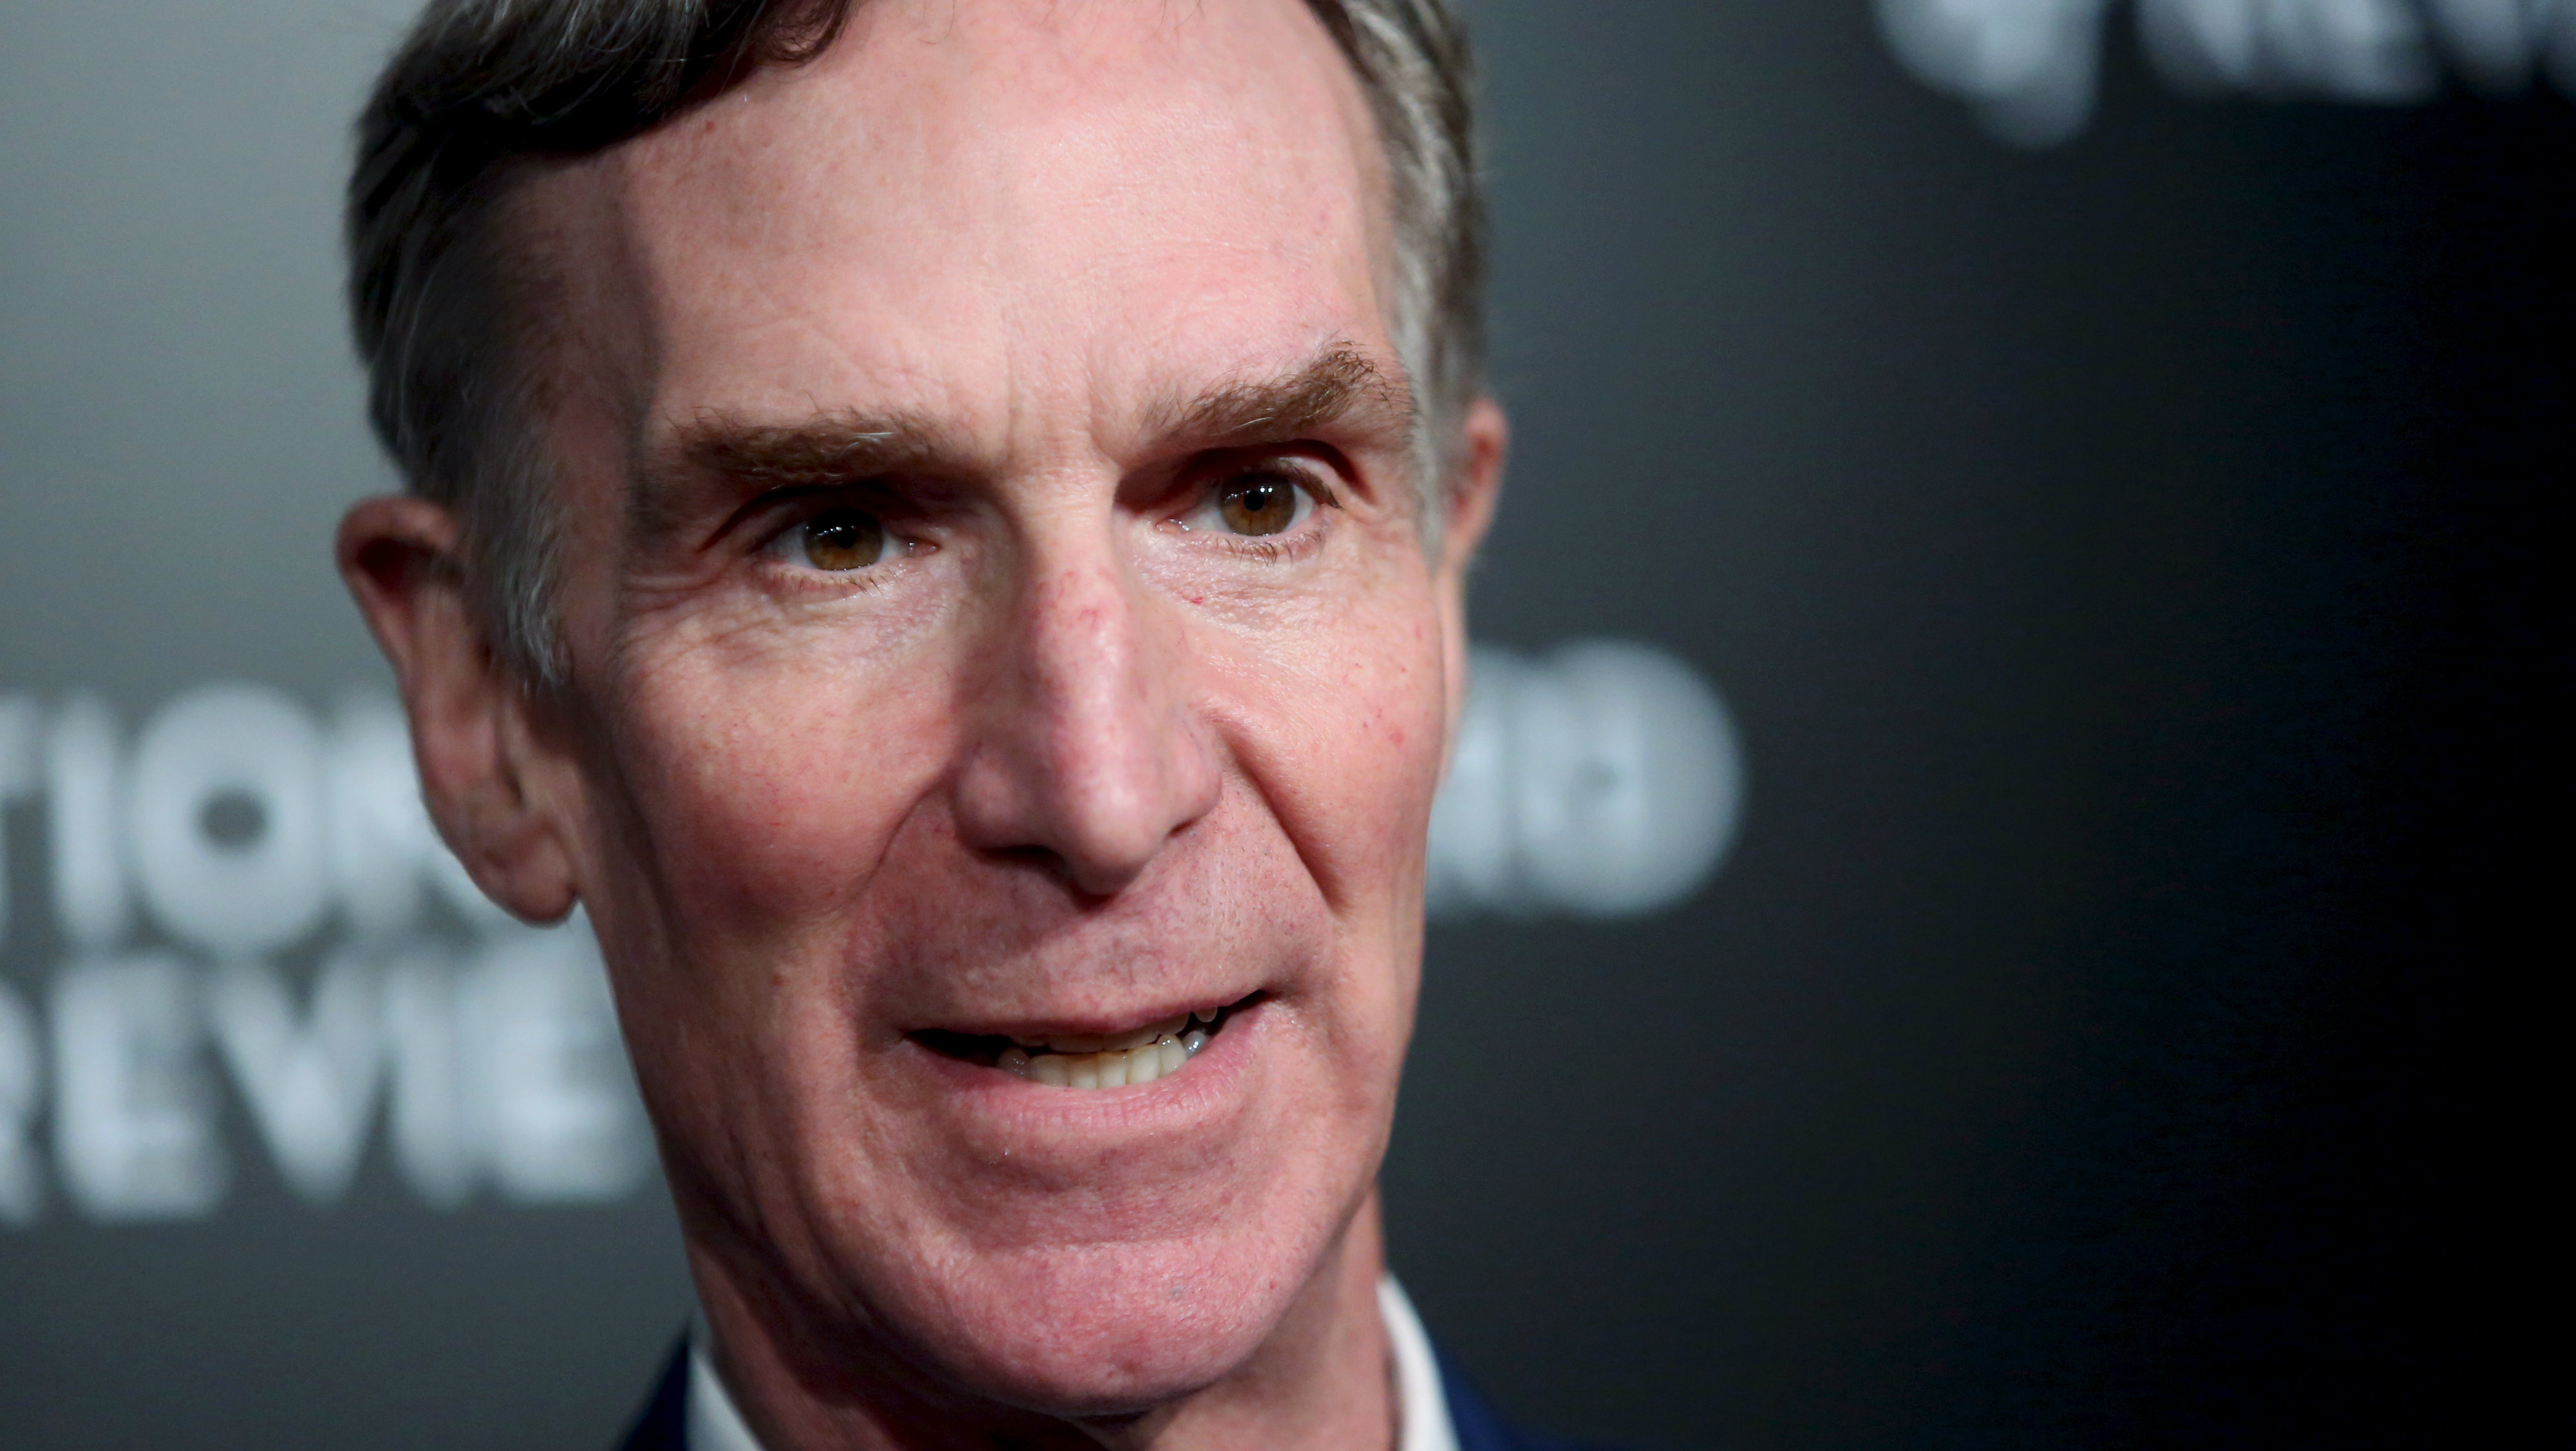 Bill Nye attends The National Board of Review Gala, held to honor the 2015 award winners, in the Manhattan borough of New York January 5, 2016.